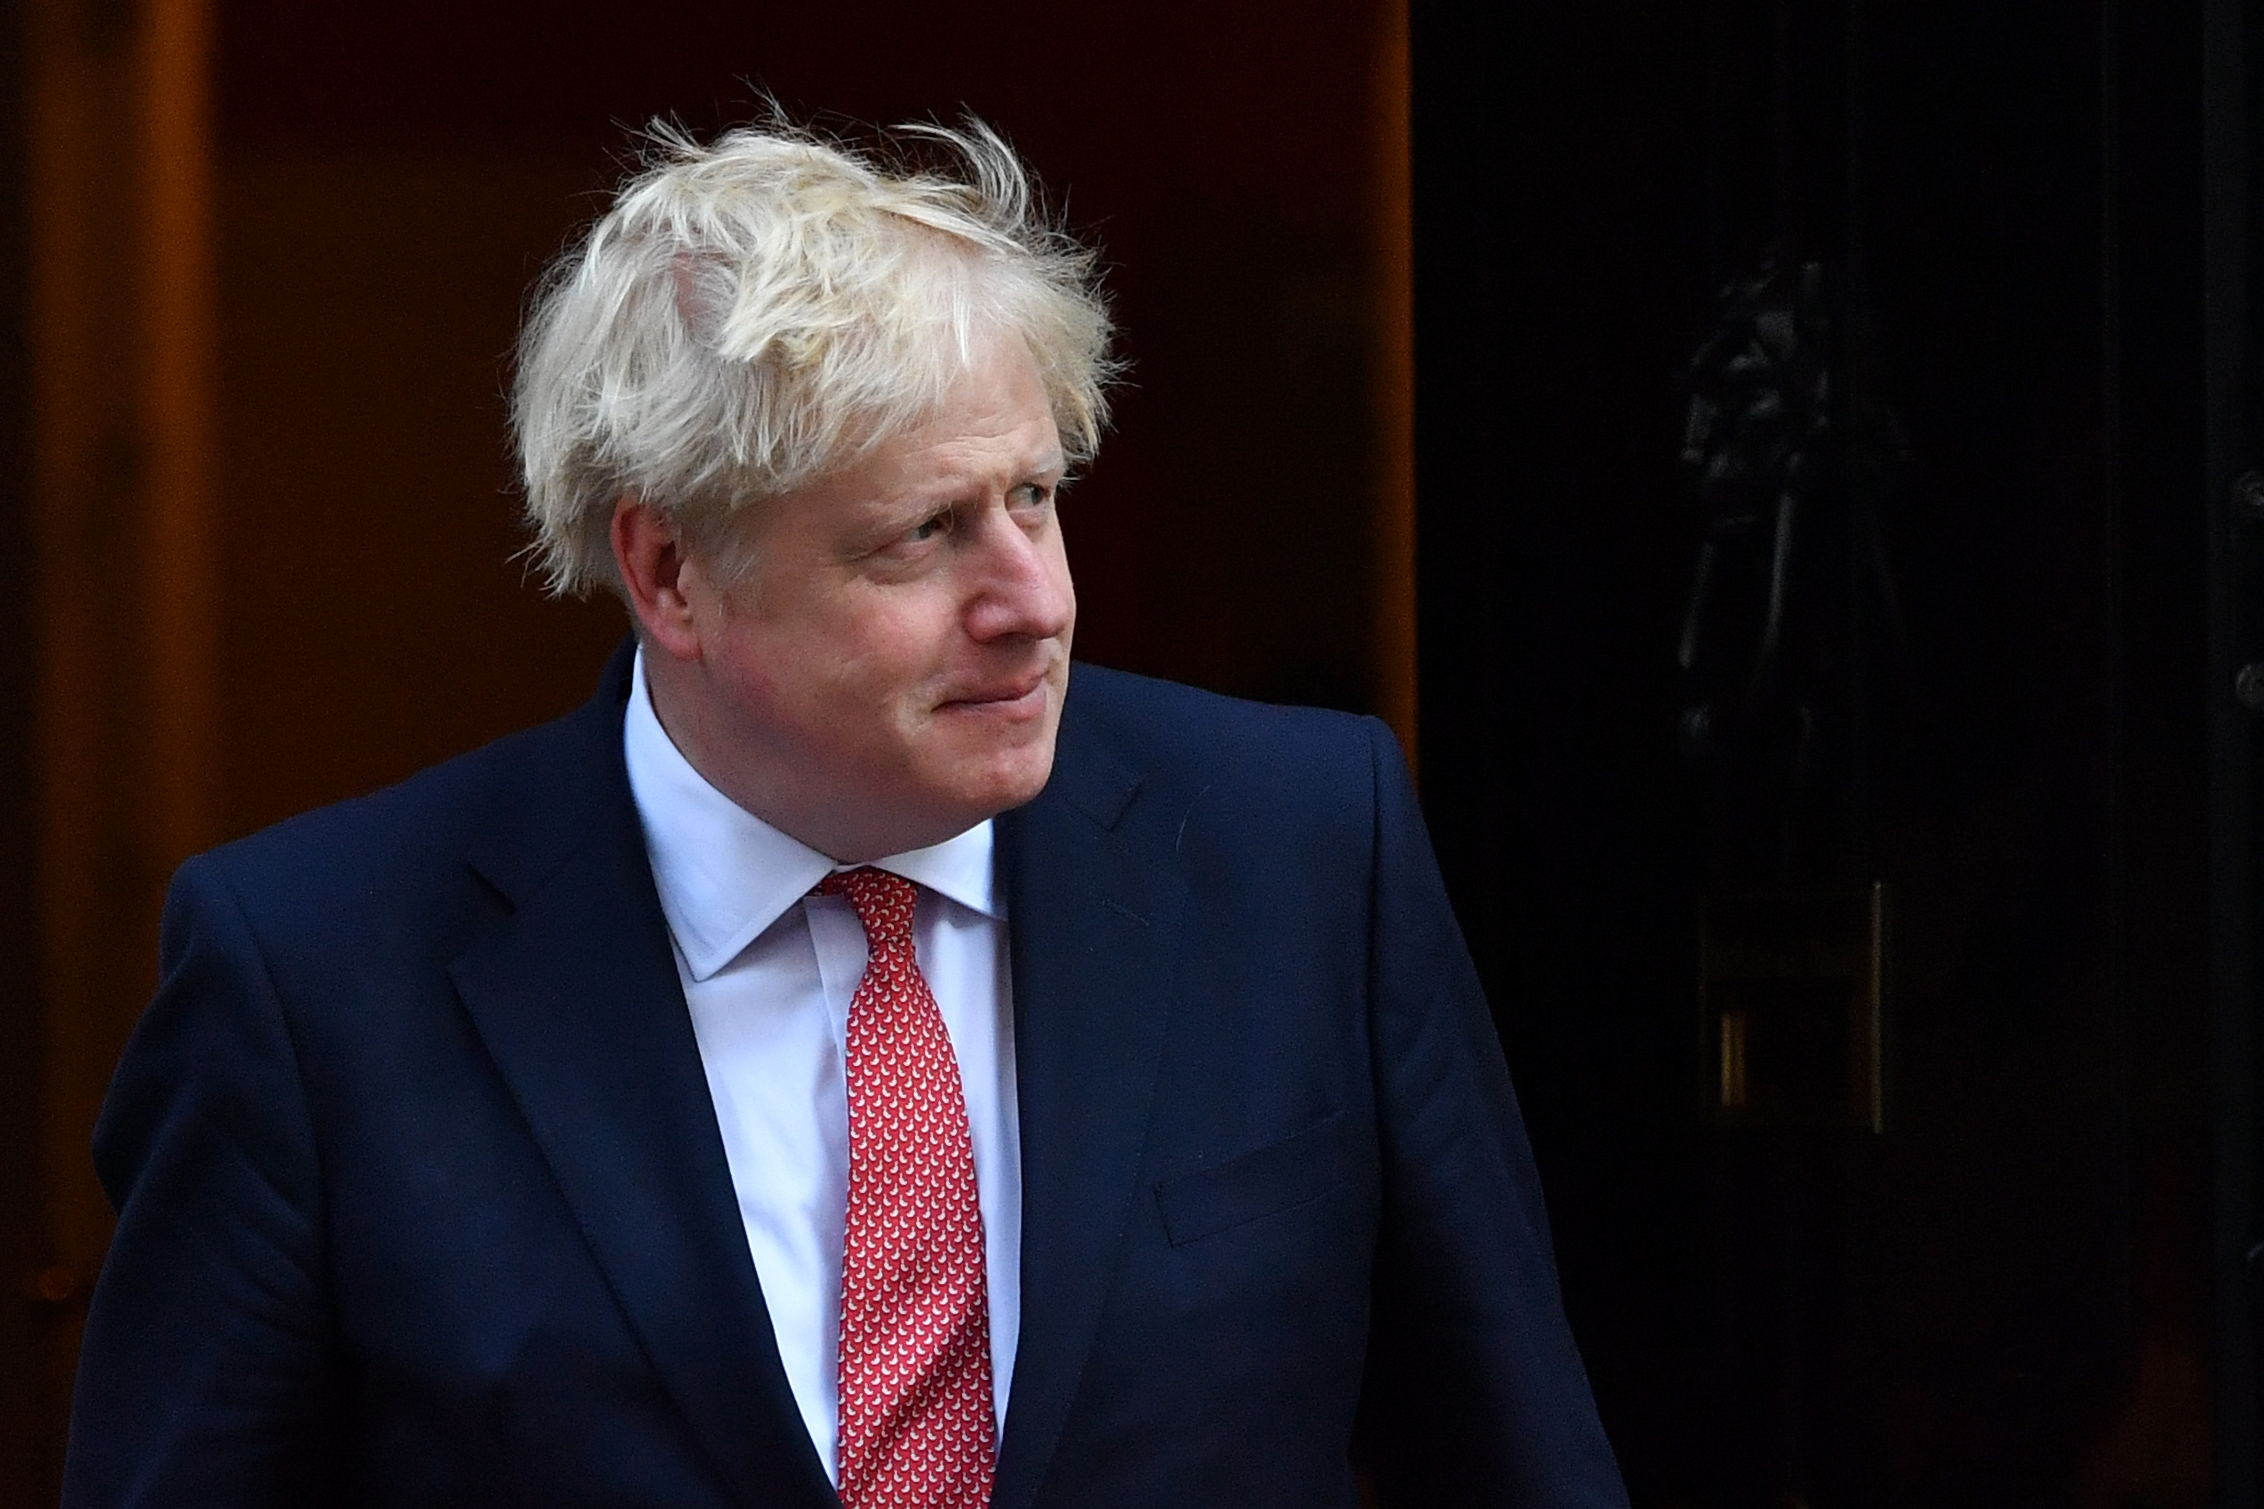 British Prime Minister Boris Johnson at 10 Downing Street, London, on September 20, 2019.